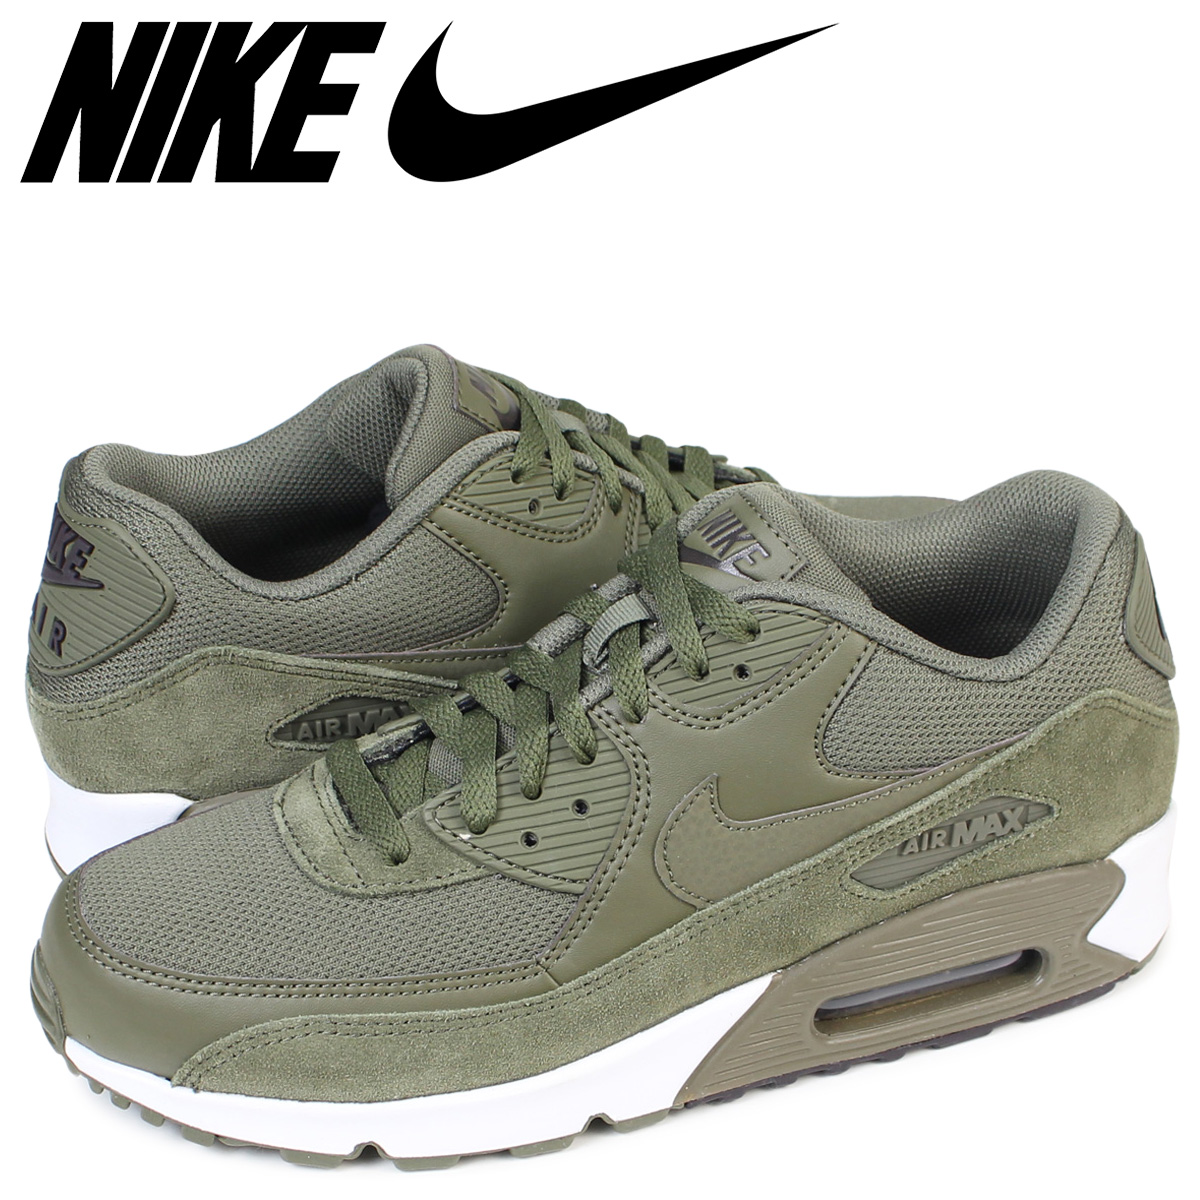 Nike NIKE Air Max 90 essential sneakers AIR MAX 90 ESSENTIAL 537,384 201 men's shoes olive [load planned Shinnyu load in reservation product 830